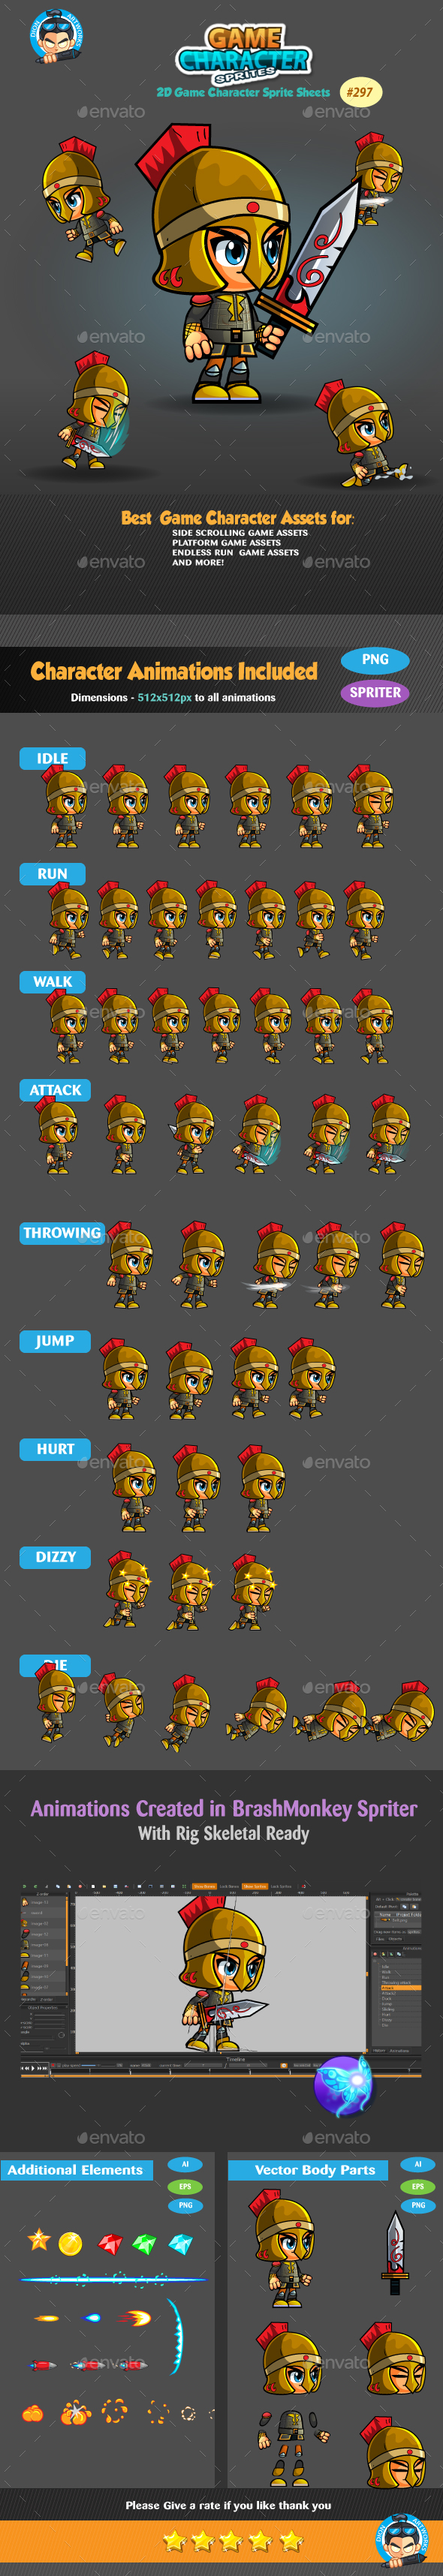 Graphicriver Knight 2D Game Character Sprites 297 19291888